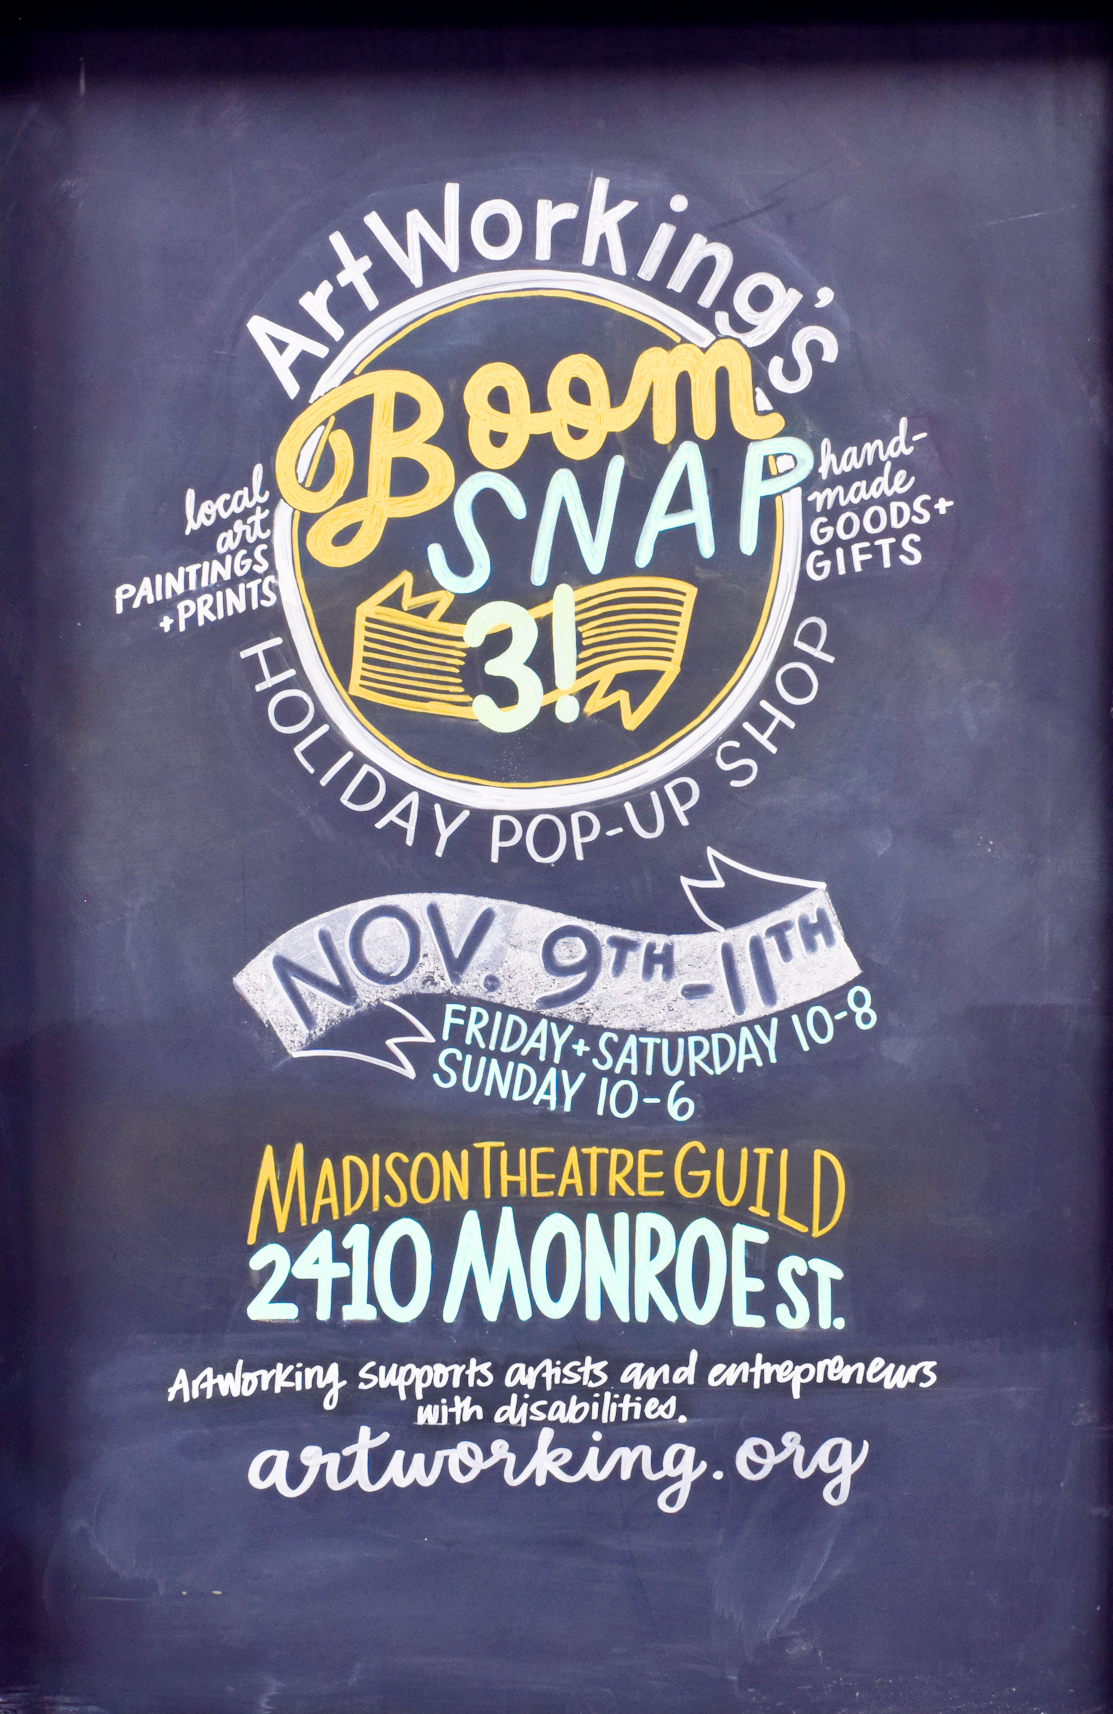 Boom Snap 3! ArtWorking's Annual Holiday Pop Up Shop, is happening November 9th-11th at the Madison Theatre Guild on Monroe Street. Hope to see you there!